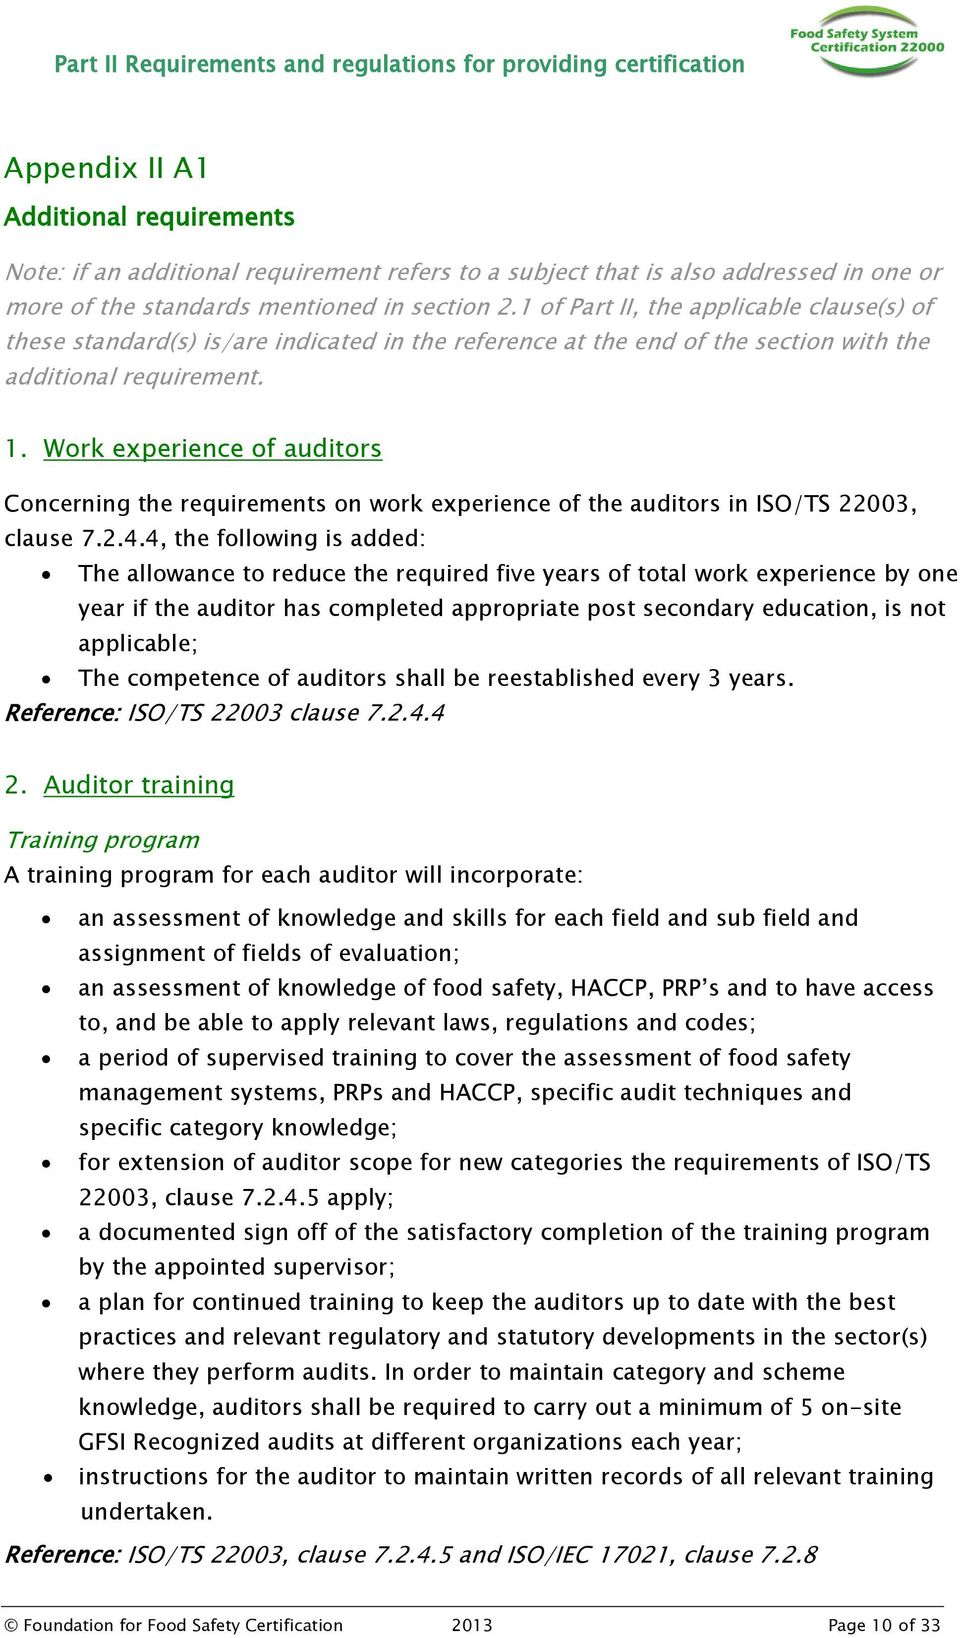 Work experience of auditors Concerning the requirements on work experience of the auditors in ISO/TS 22003, clause 7.2.4.